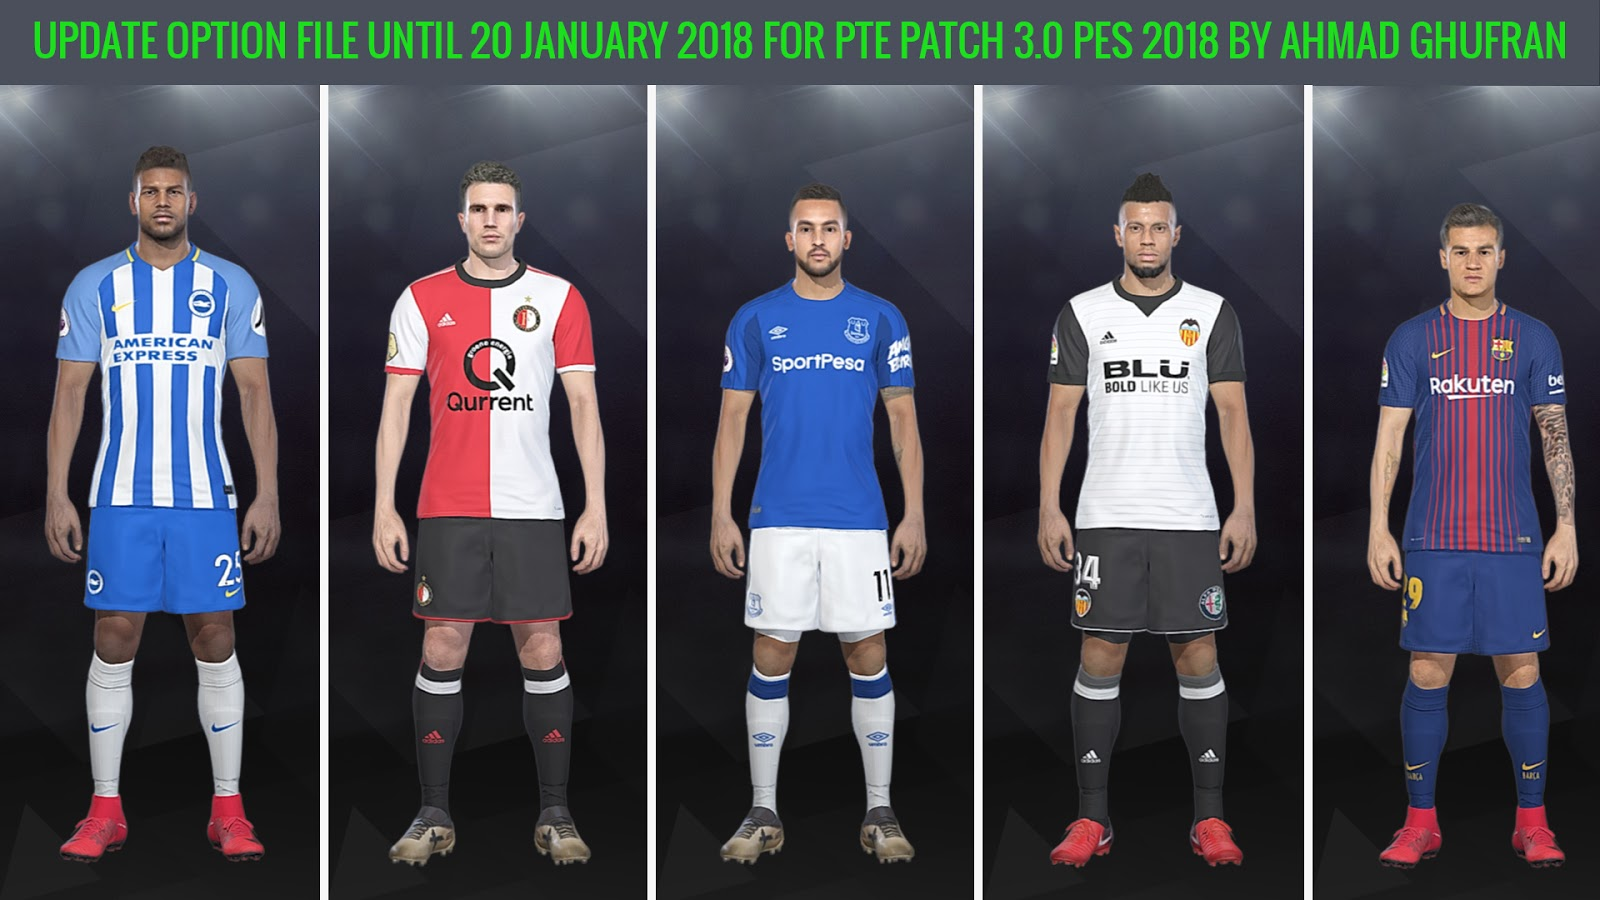 UPDATE OPTION FILE 20 JANUARY 2018 FOR PTE PATCH 3.0 PES 2018 BY AHMAD GHUFRAN